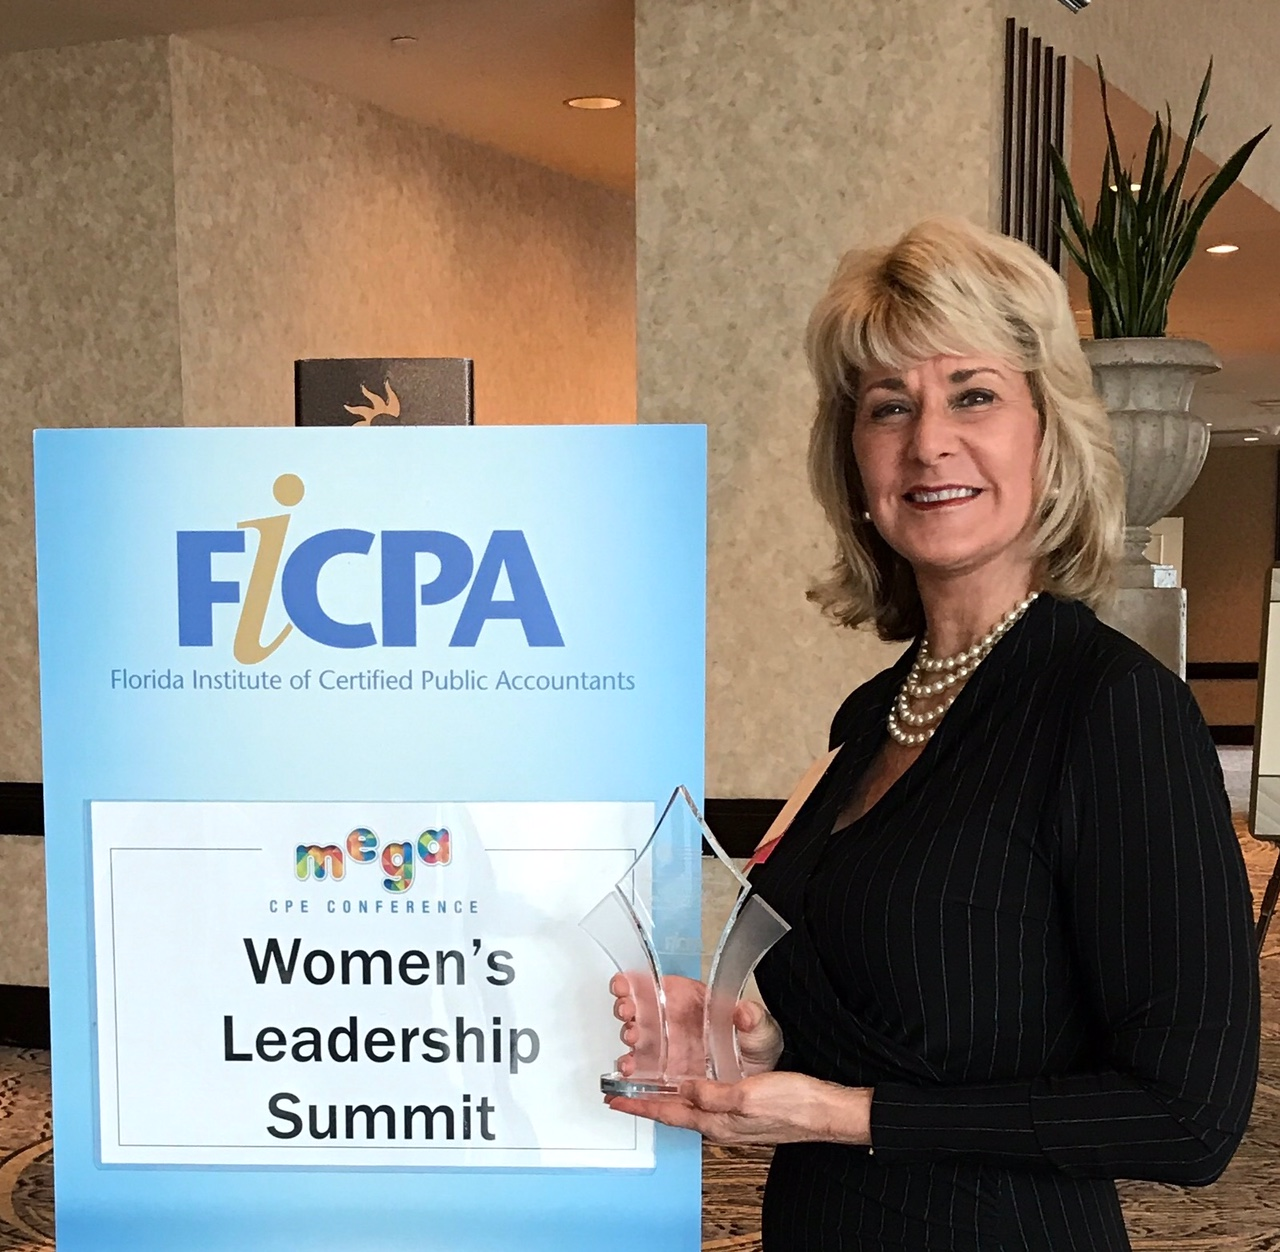 Gail with Award for FICPA